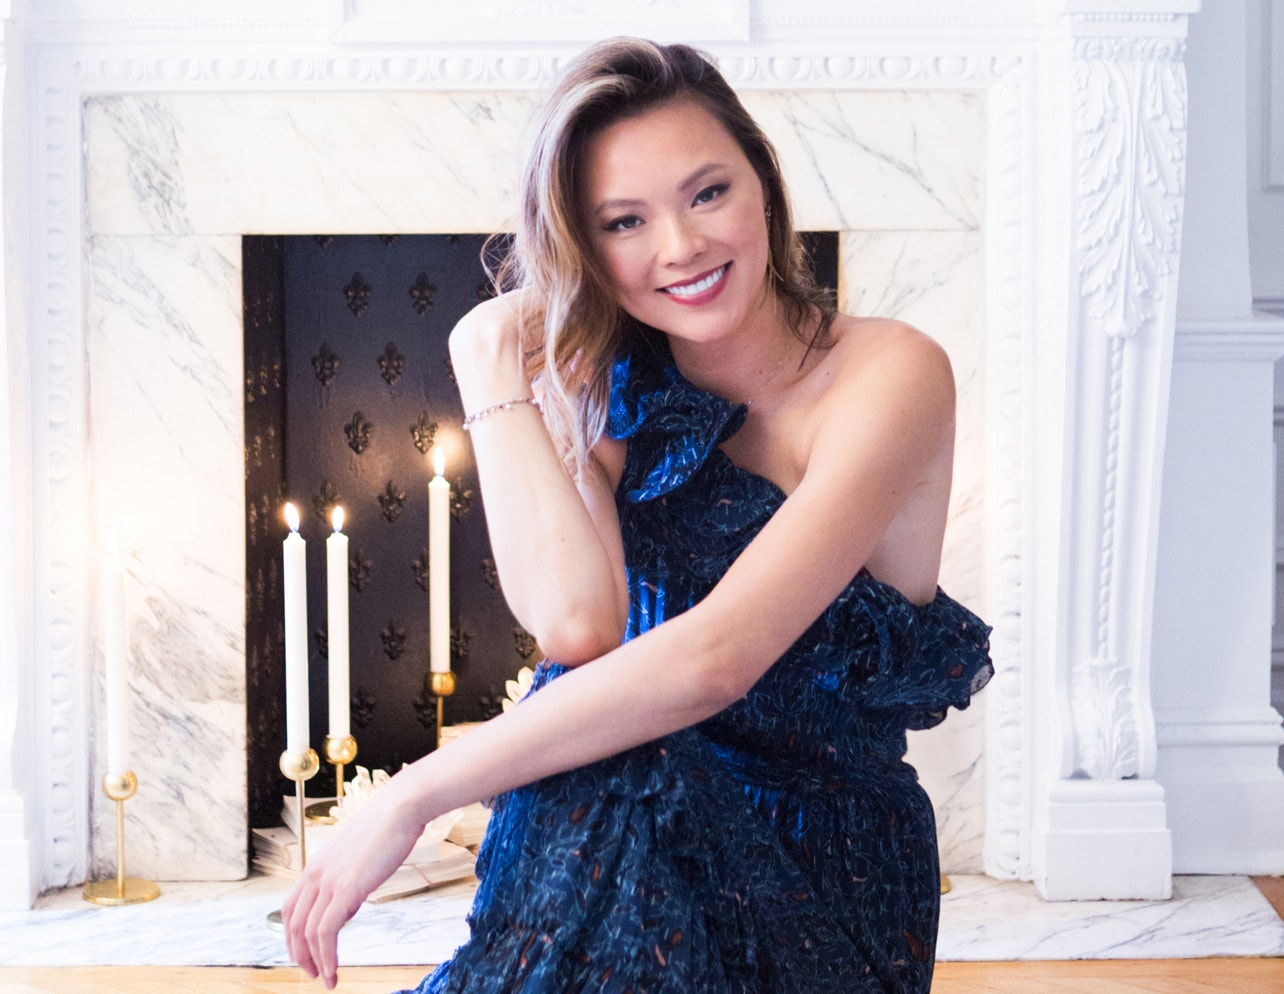 Kathy Kuo Portrait Photo